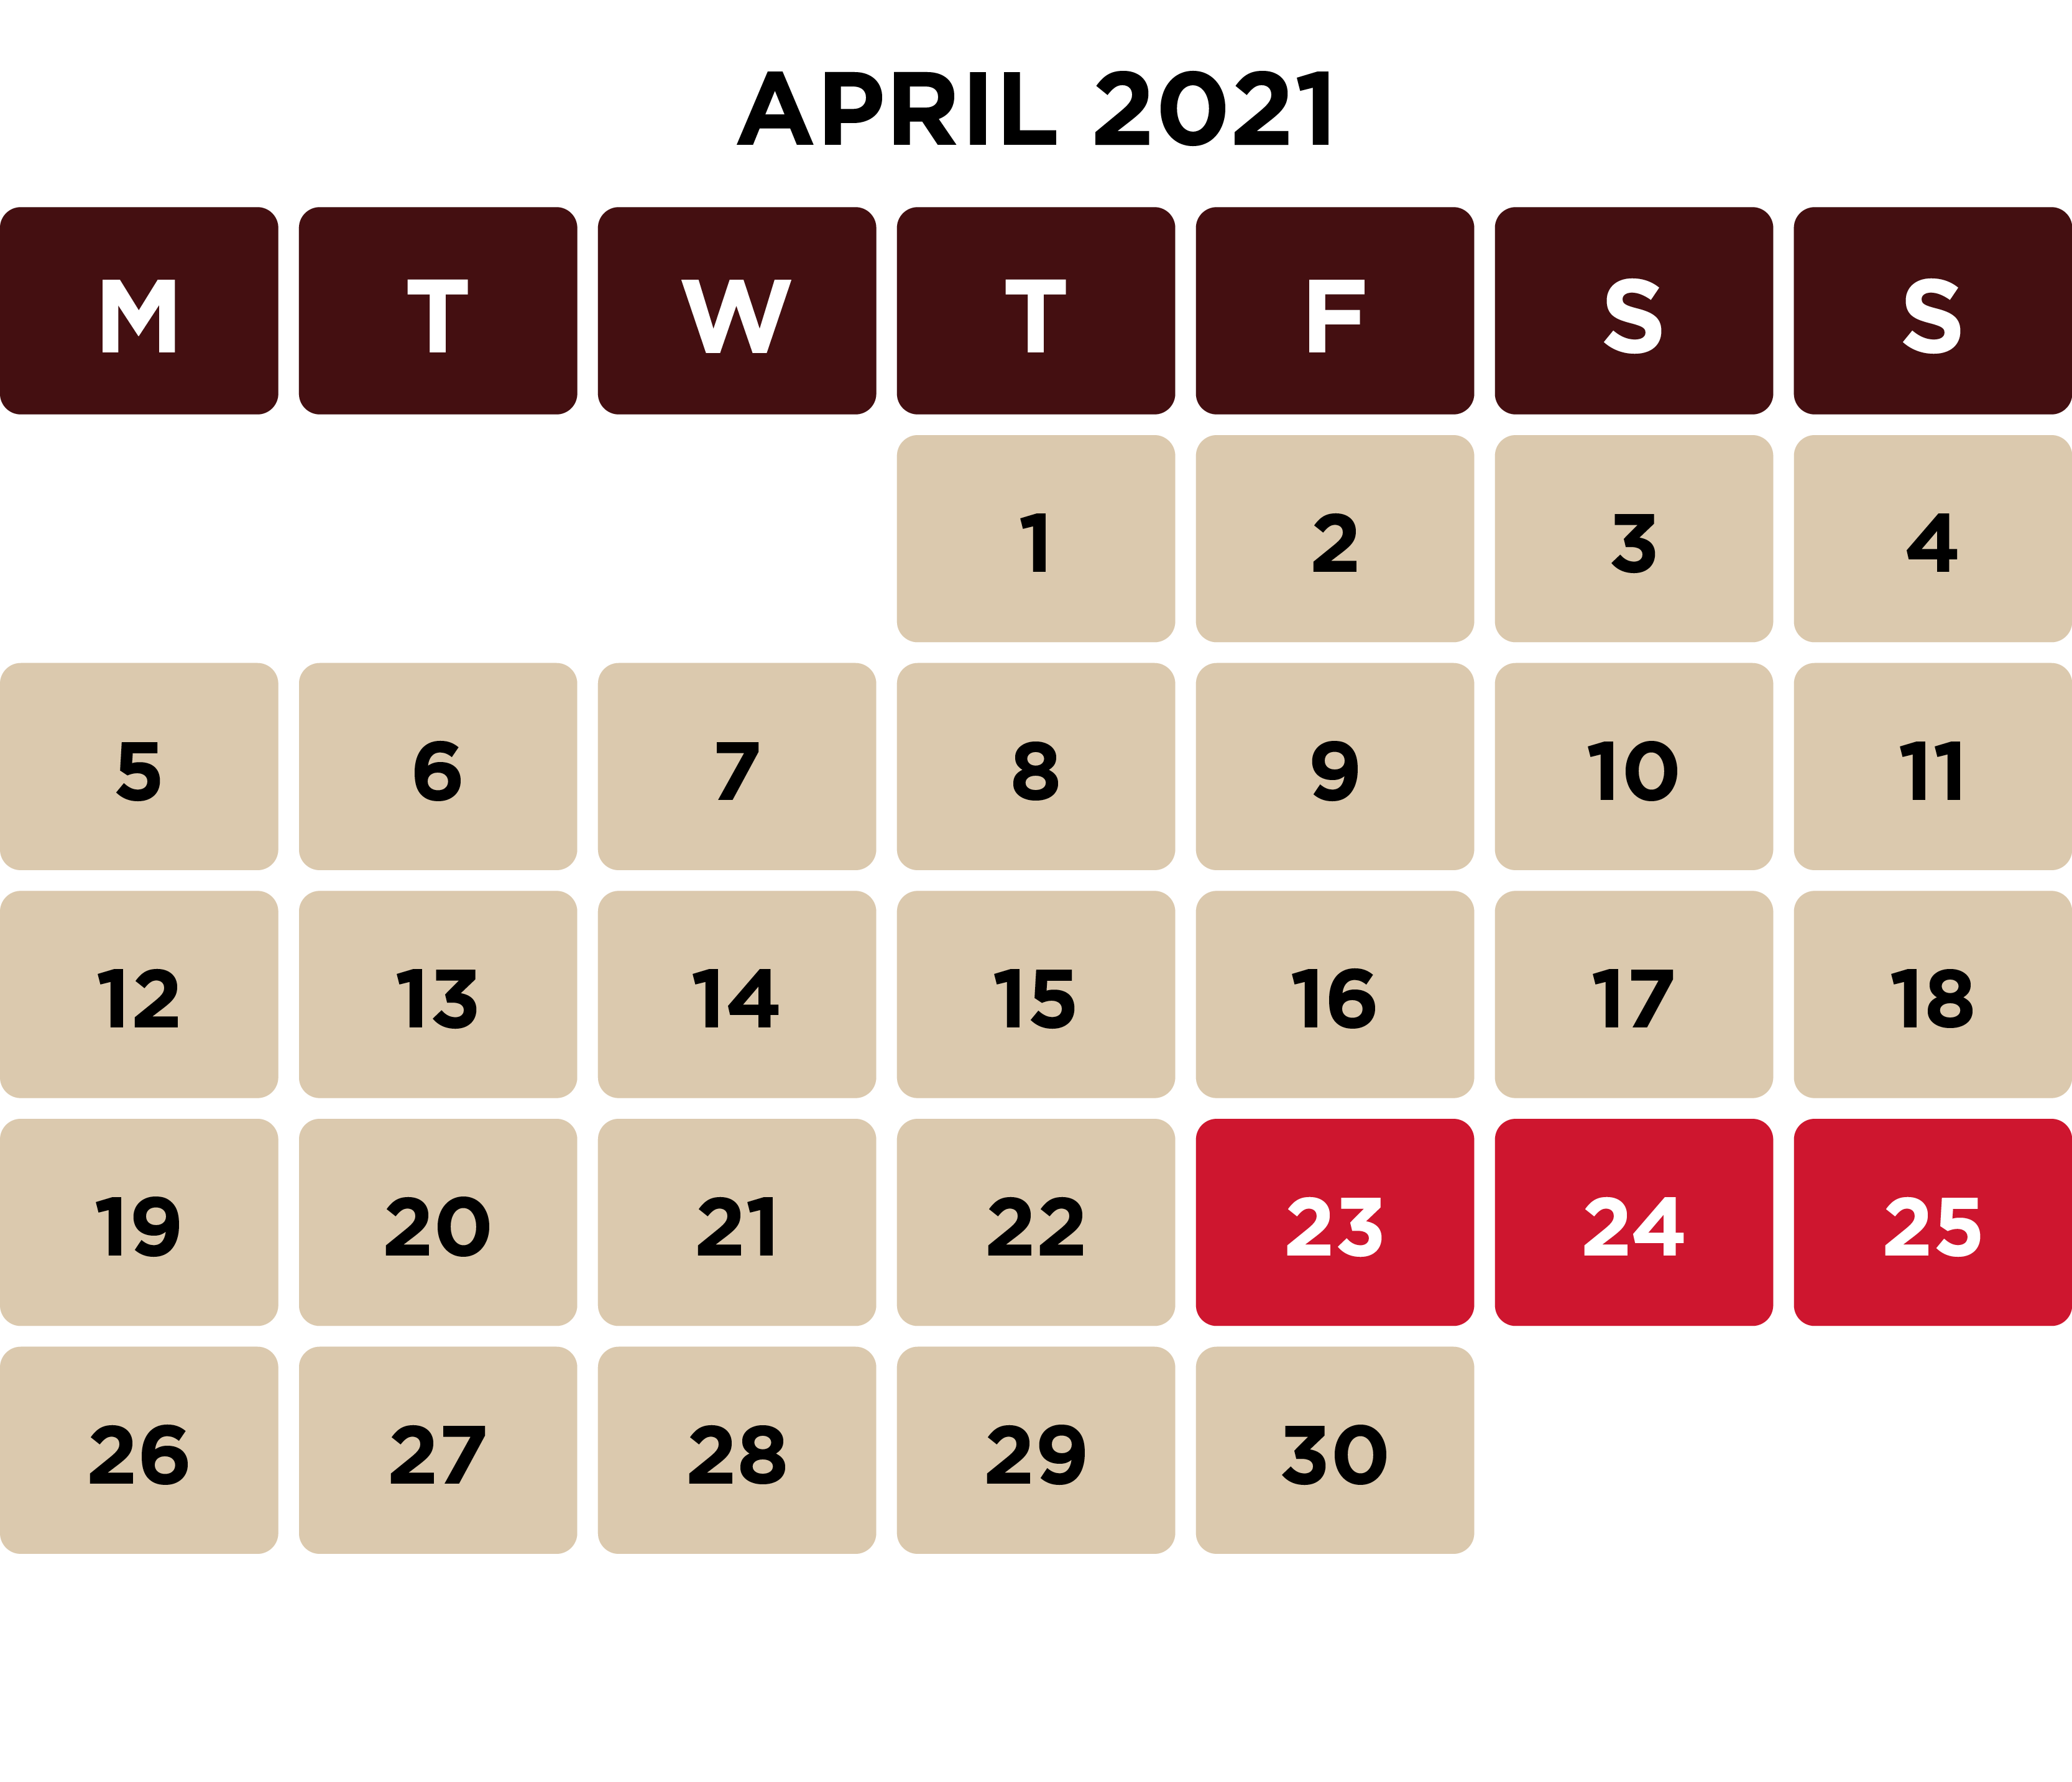 LNER1078 East Coast Upgrade 2020-21 Dates - Web Graphic Month Supply 800x688px - 06 April 2021.png